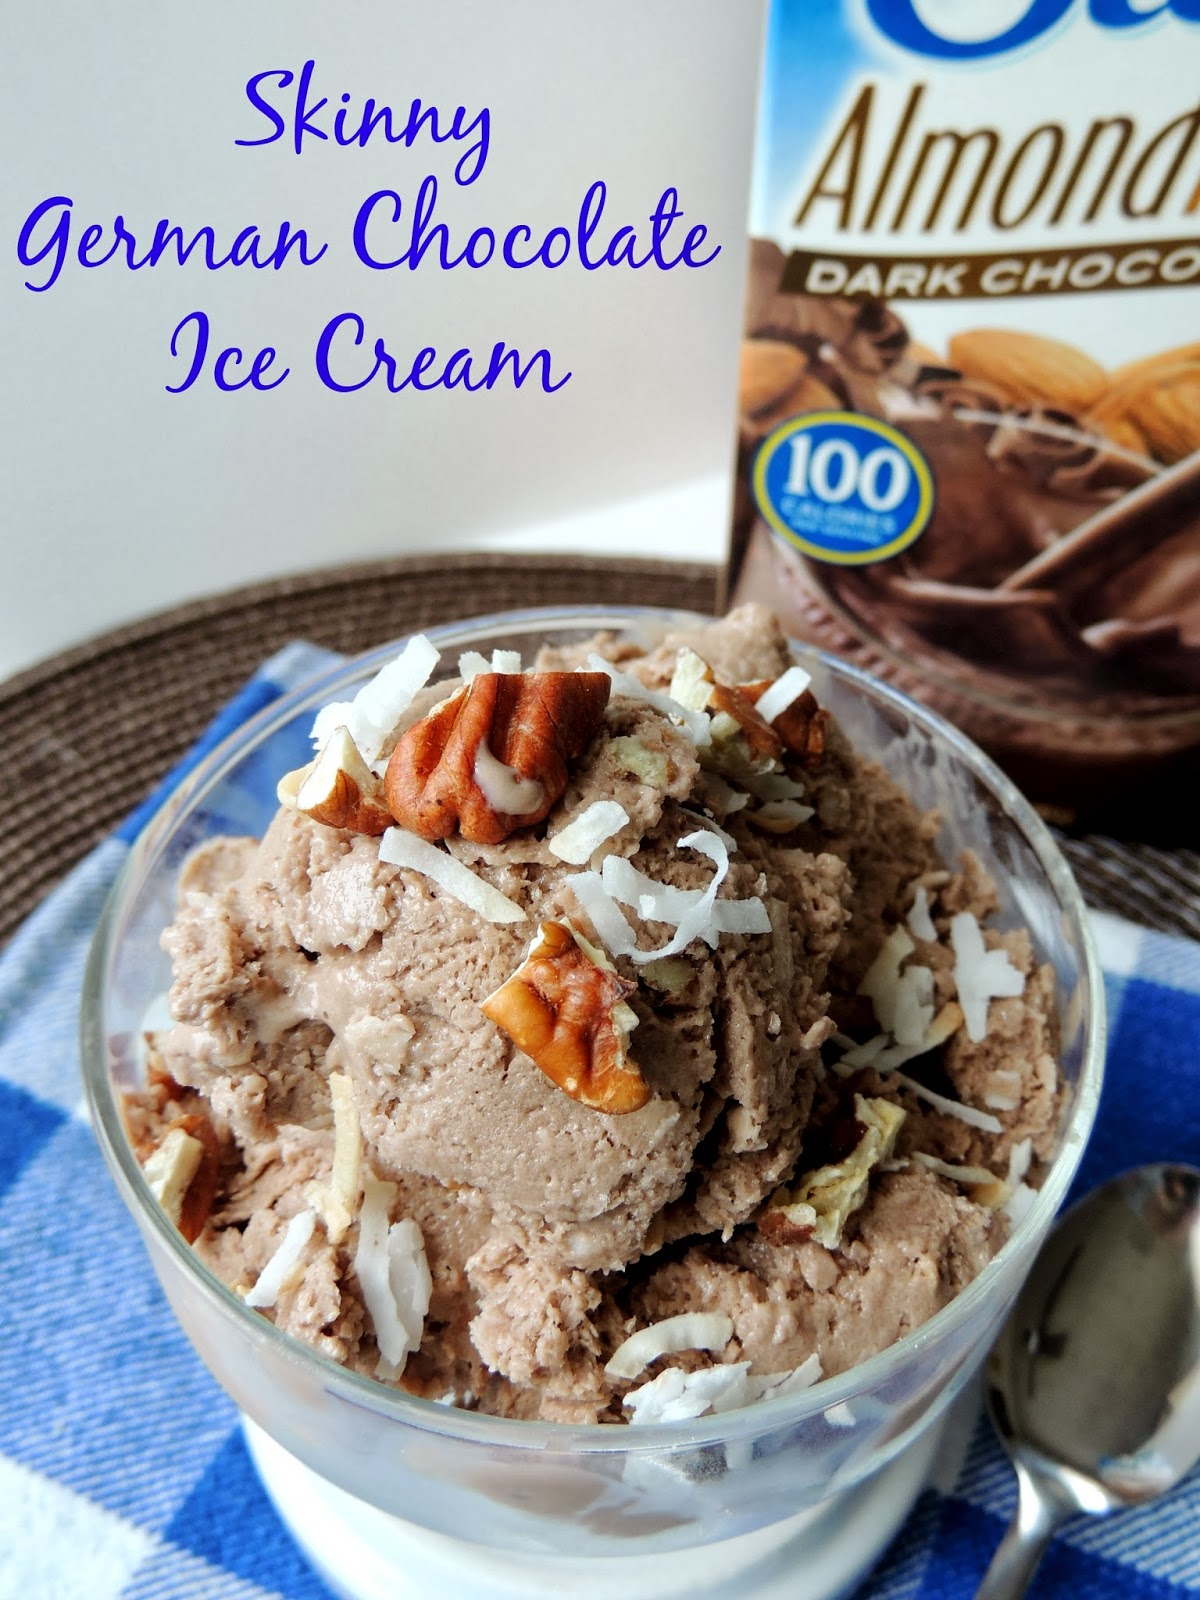 Made with dark chocolate almond milk, this no-churn Skinny German Chocolate Ice Cream is creamy & delicious and easy on the waistline.